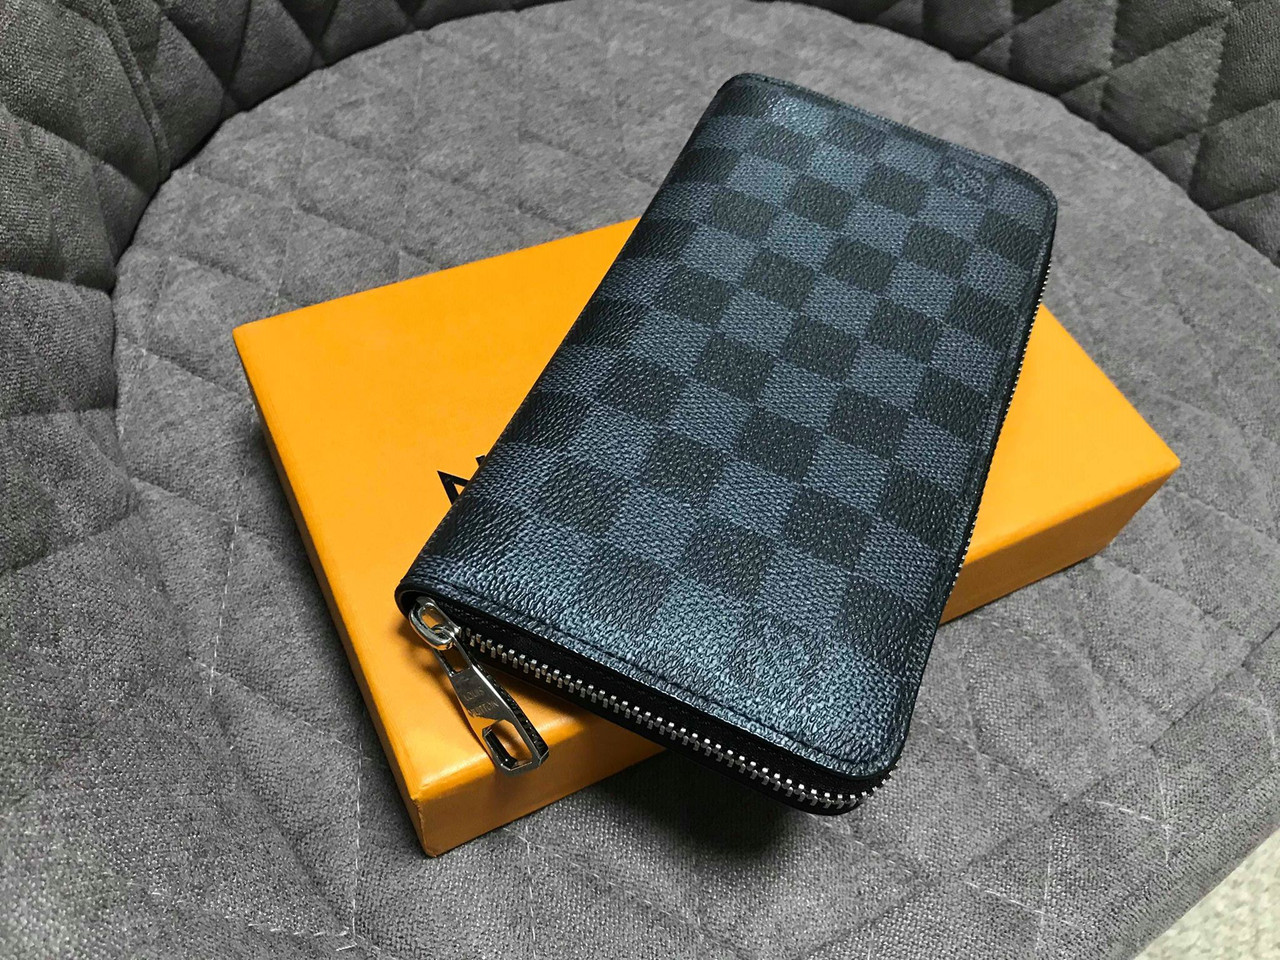 c12a0345faae Кошельки Louis Vuitton Zippy 19см - 7А — в Категории